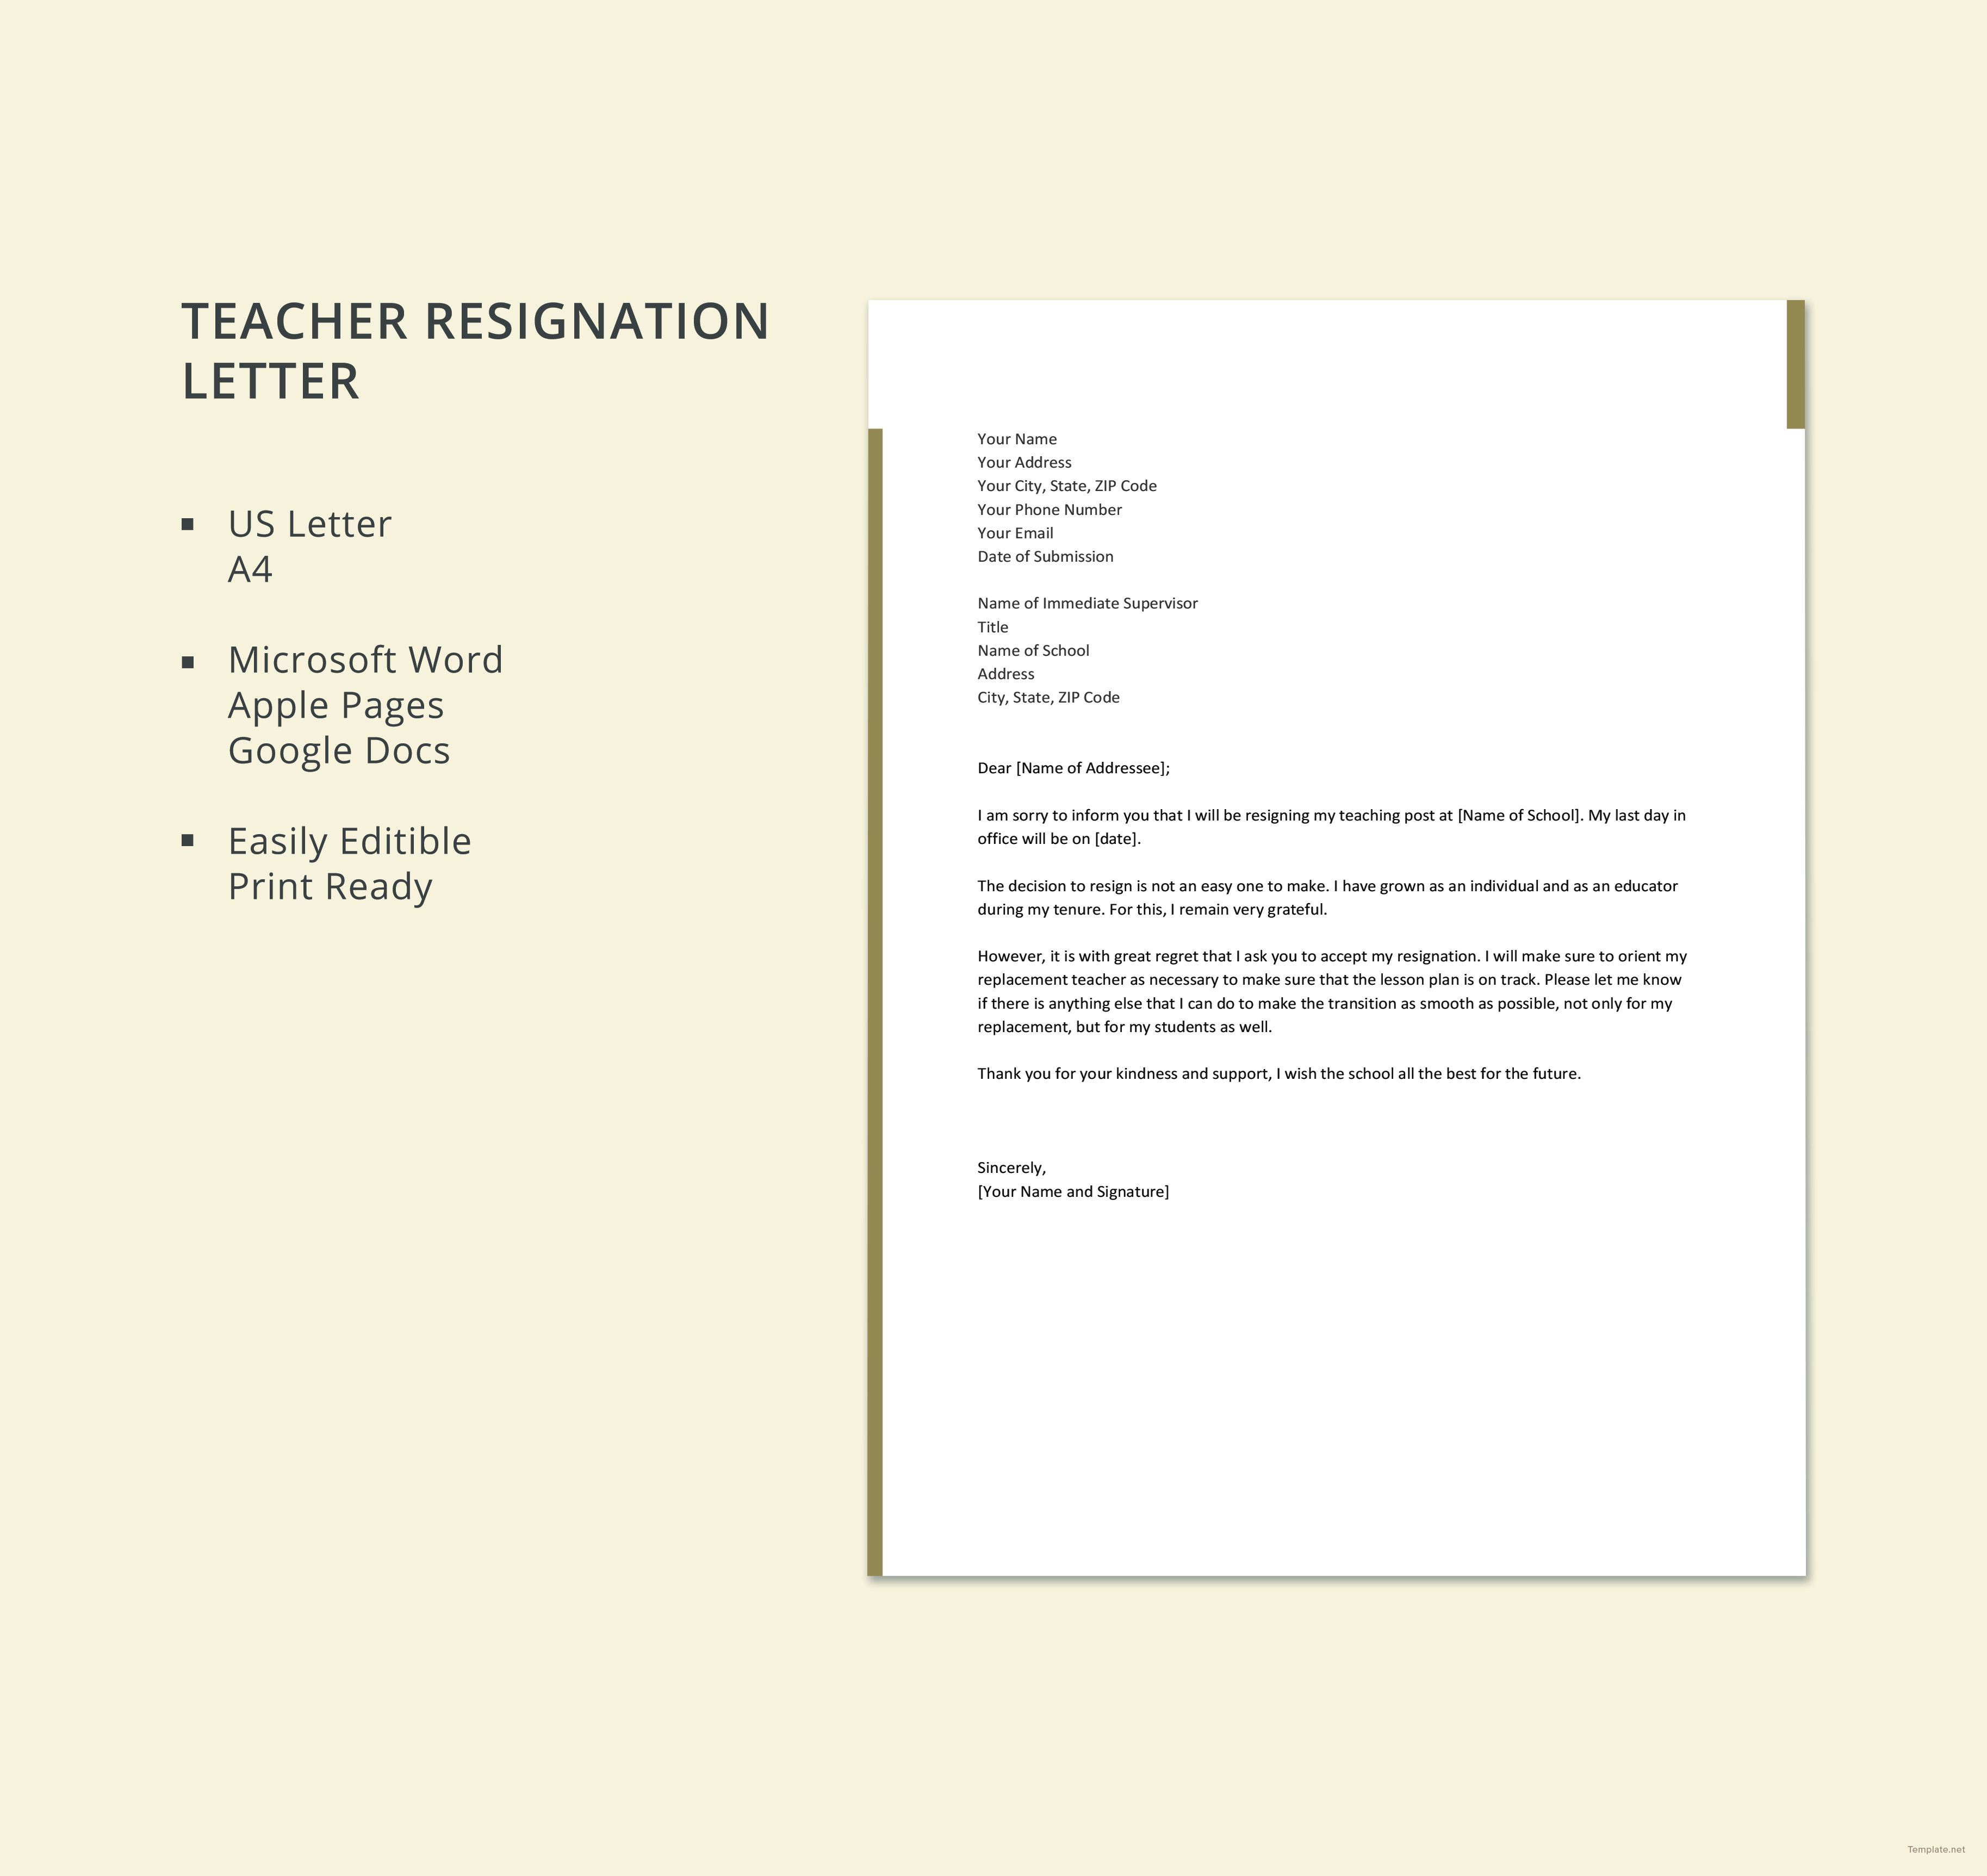 Letter Templates Free Download (6) TEMPLATES EXAMPLE